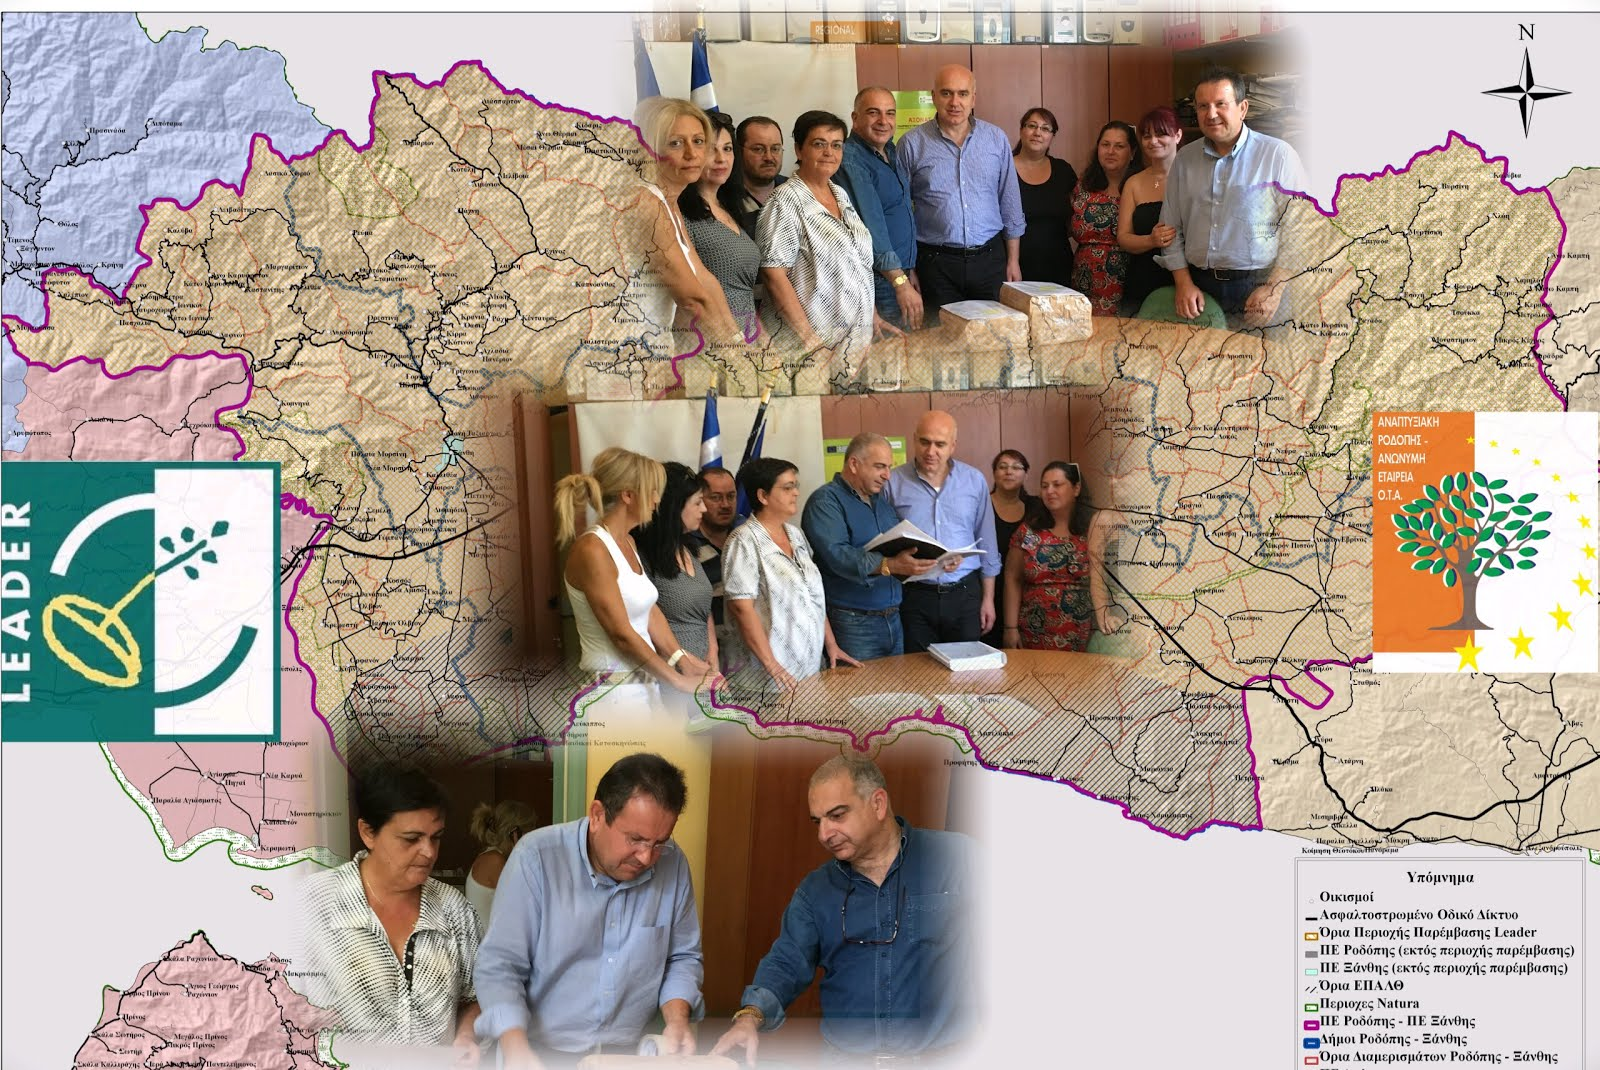 Working on the LEADER PROJECT FOR TWO REGIONS ODOPI XANTHI